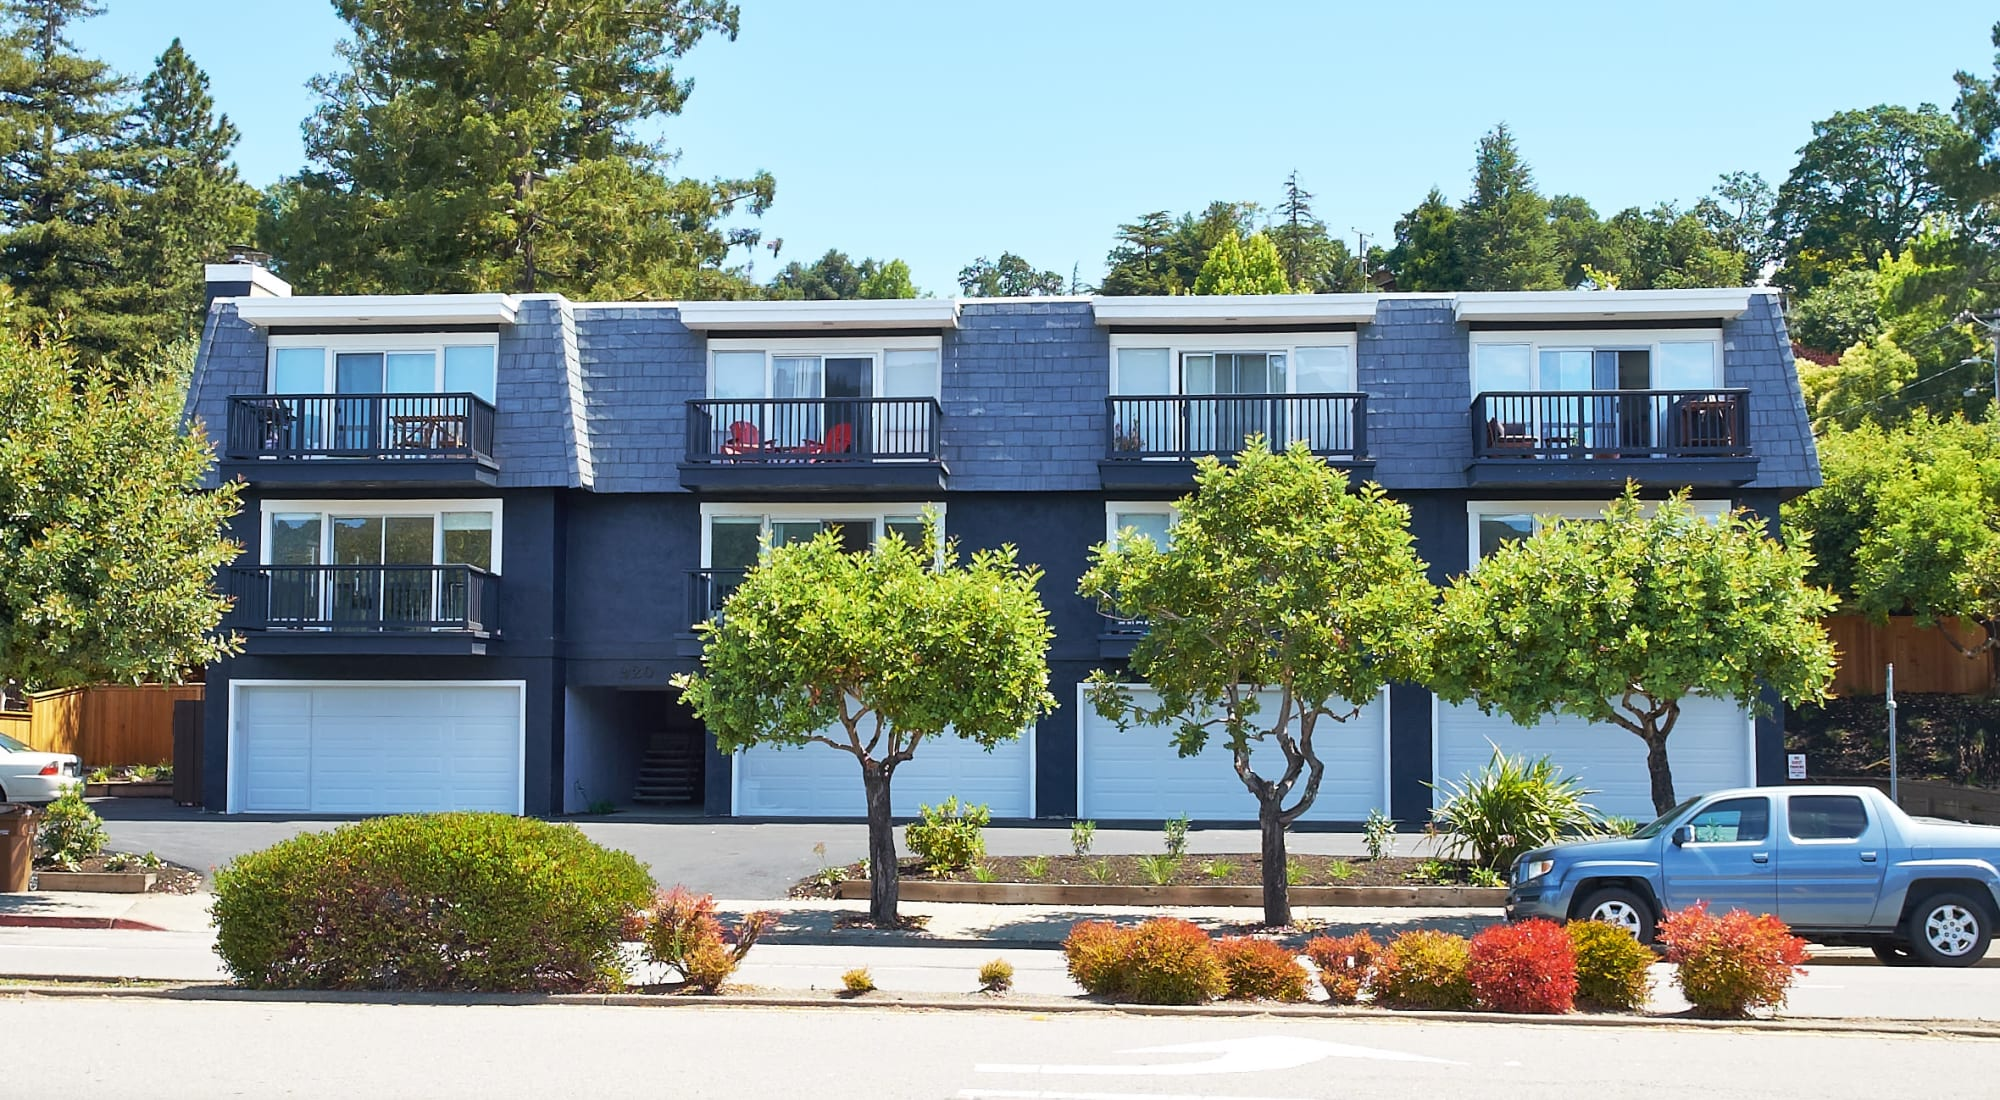 Apartments at 920 SFD in Kentfield, California